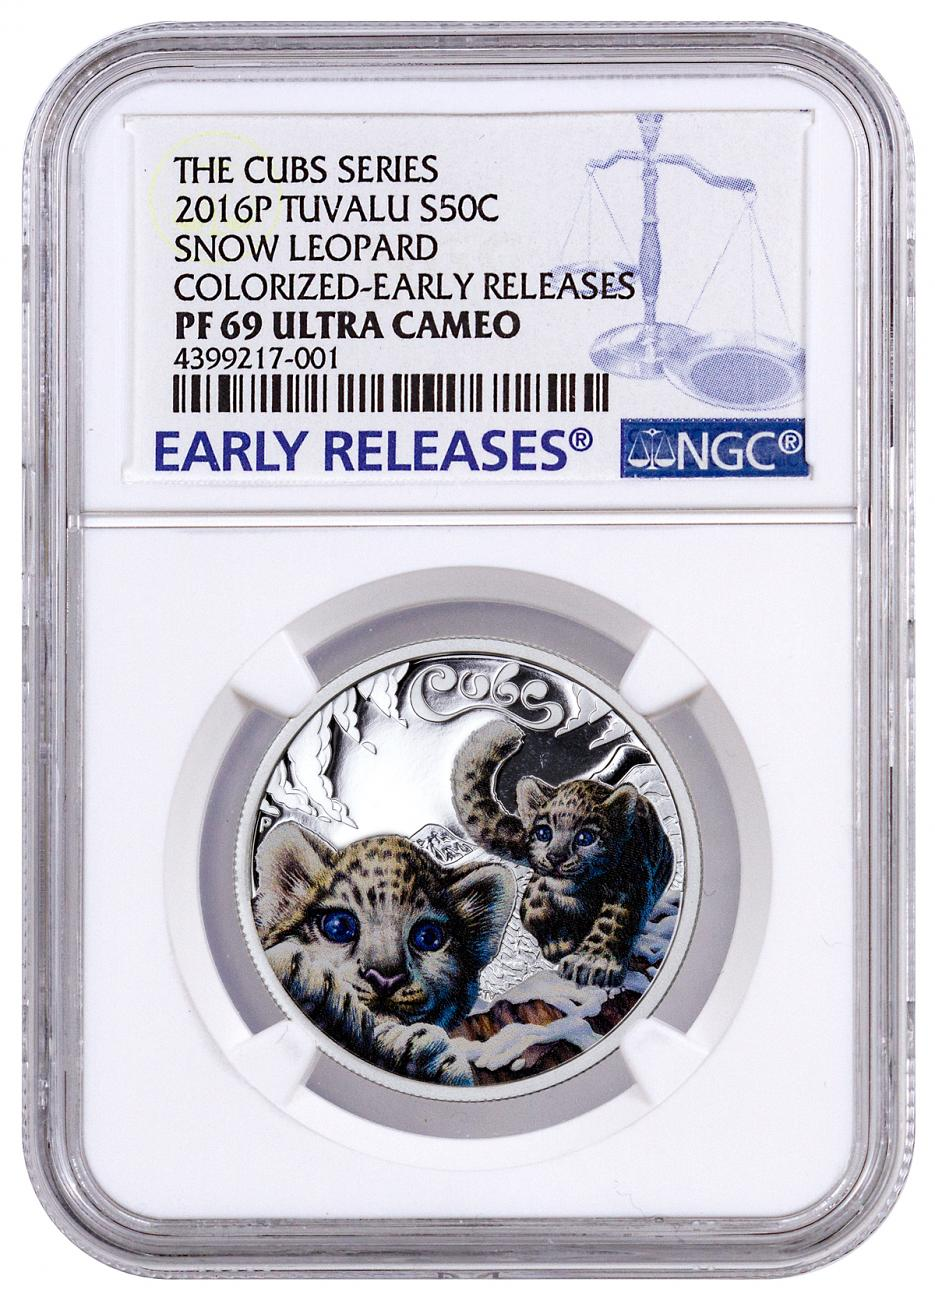 2016-P Tuvalu 50c 1/2 oz. Colorized Proof Silver Cubs - Snow Leopard - NGC PF69 UC Early Releases